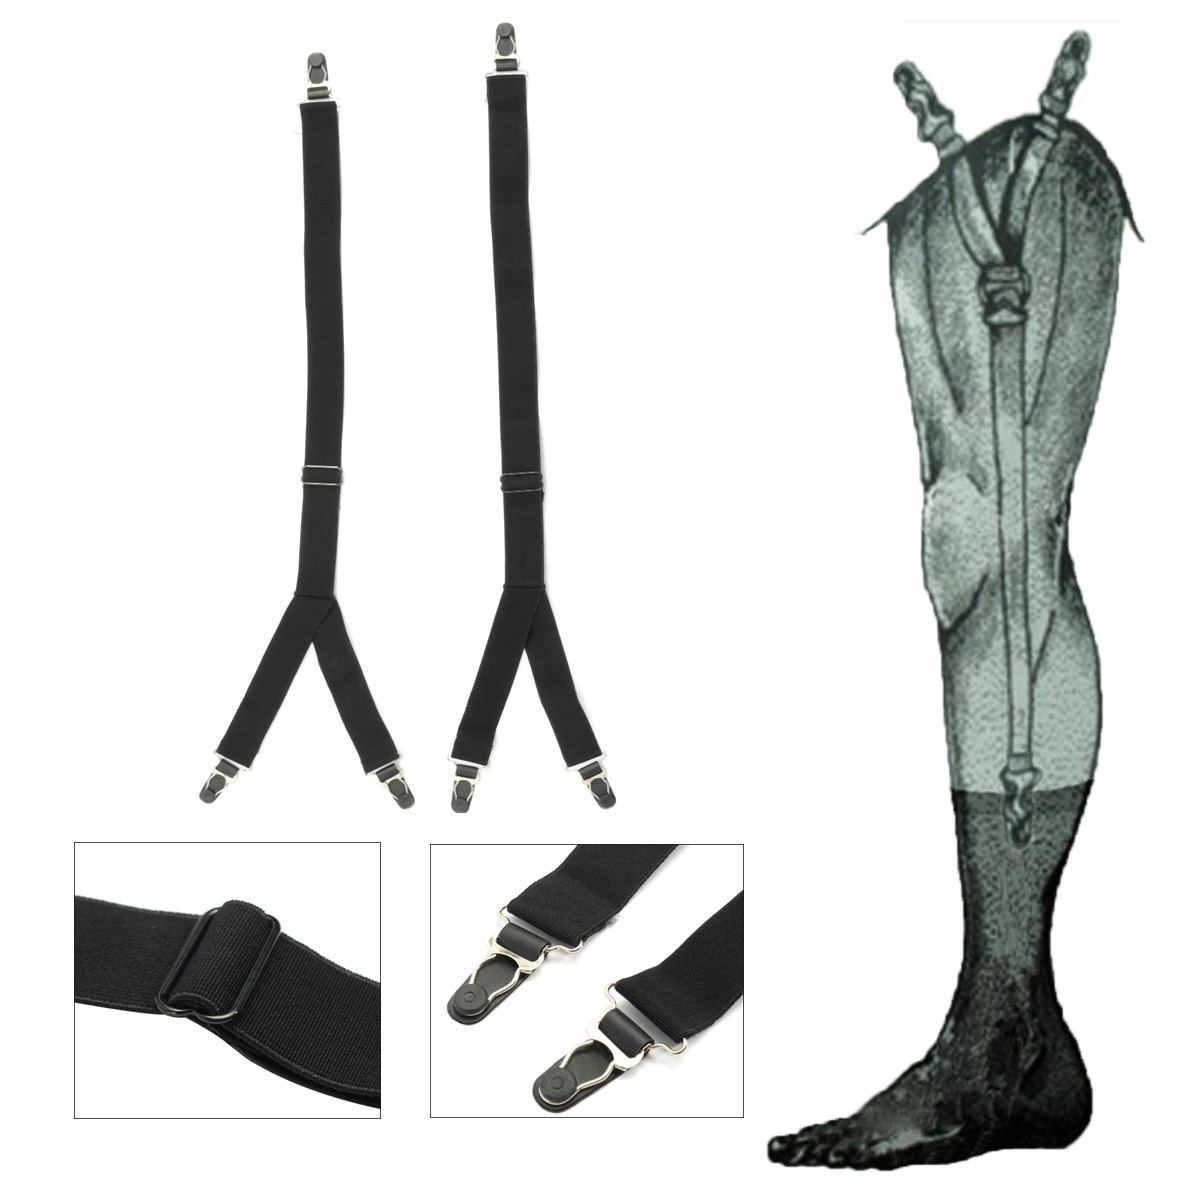 2aaff2a31b0 1 Pair Y Shape Socks Shirt Suspenders Stays Holder For Male